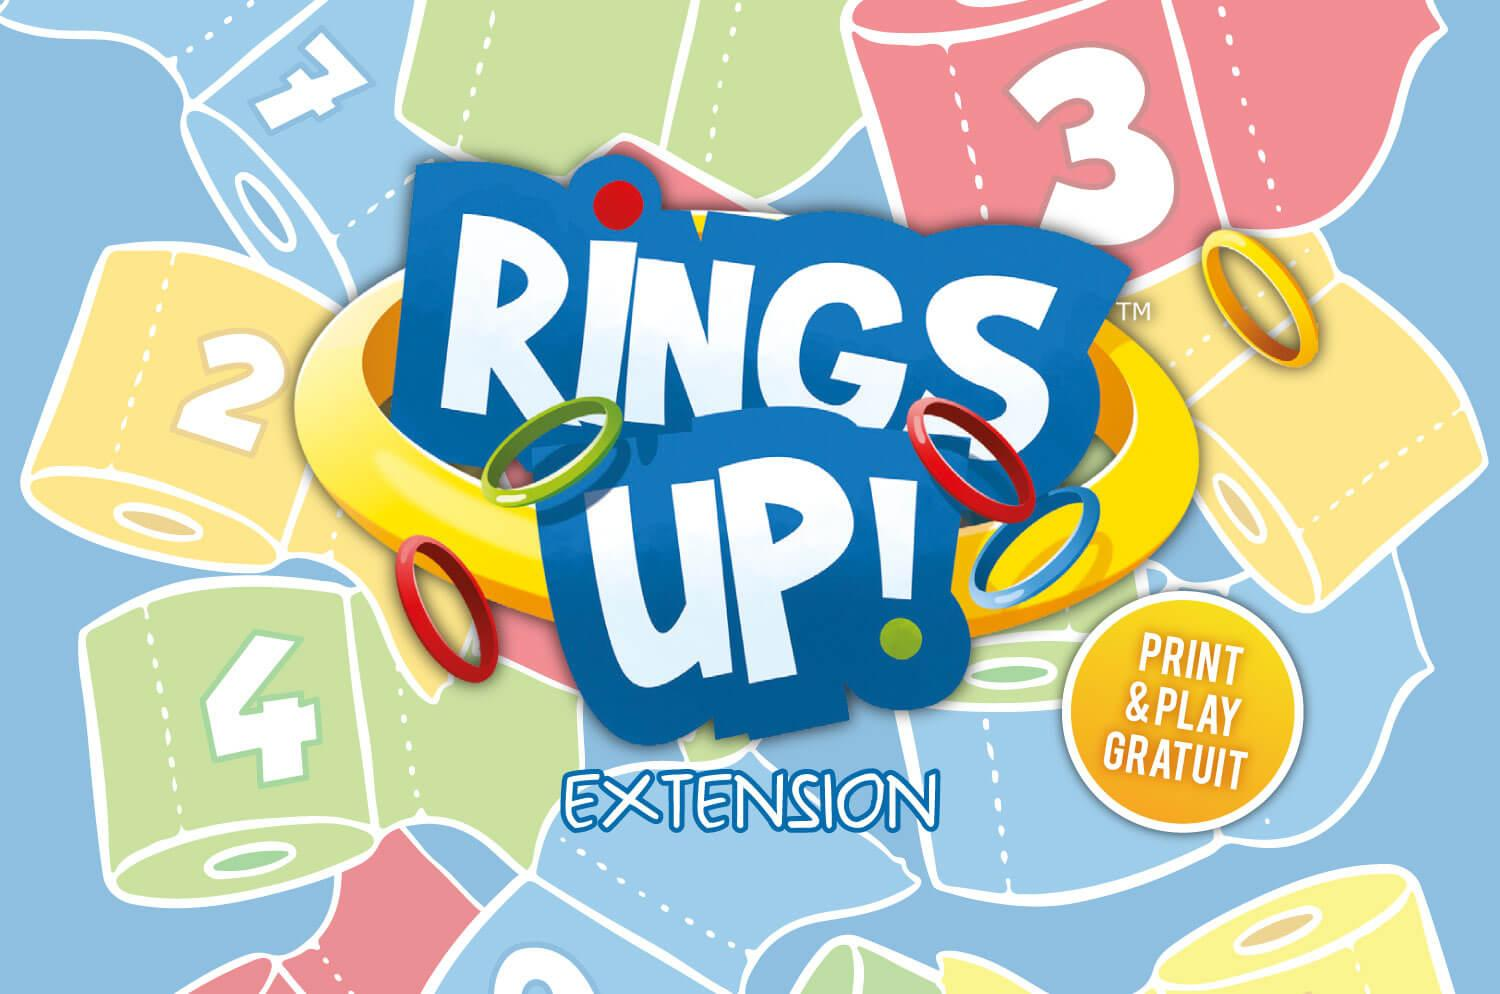 Print and Play extension Rings Up!